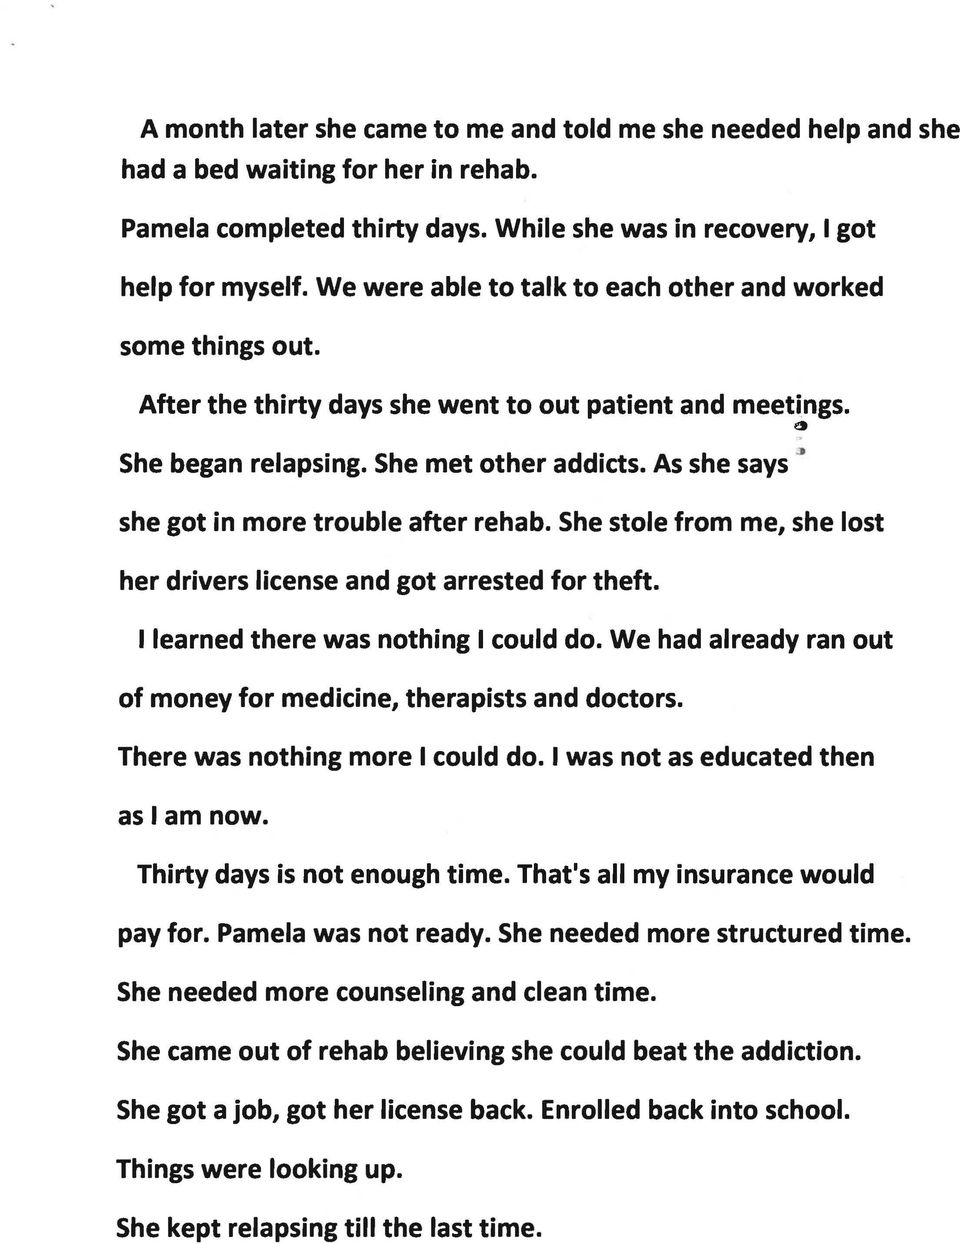 As she says ~ she got in more trouble after rehab. She stole from me, she lost her drivers license and got arrested for theft. I learned there was nothing I could do.